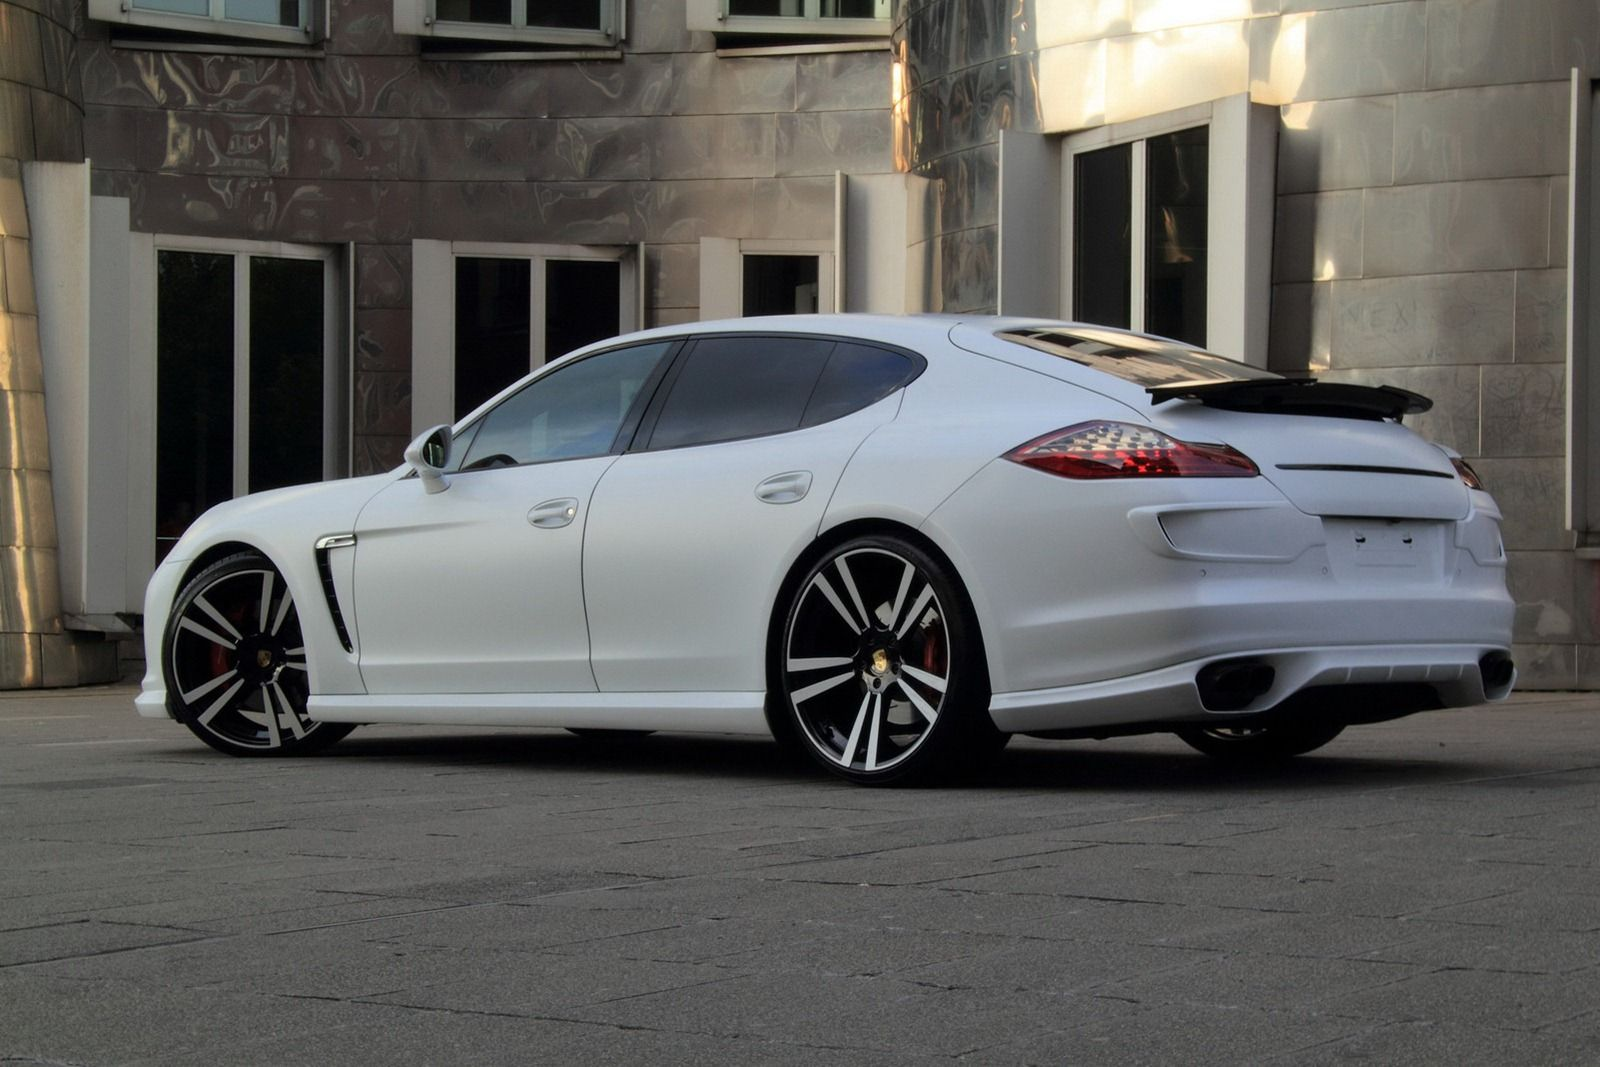 porsche panamera gts with a set of wheels with white carbon fiber barrel and white and blue colored aluminum center - Porsche Panamera Turbo 2014 White